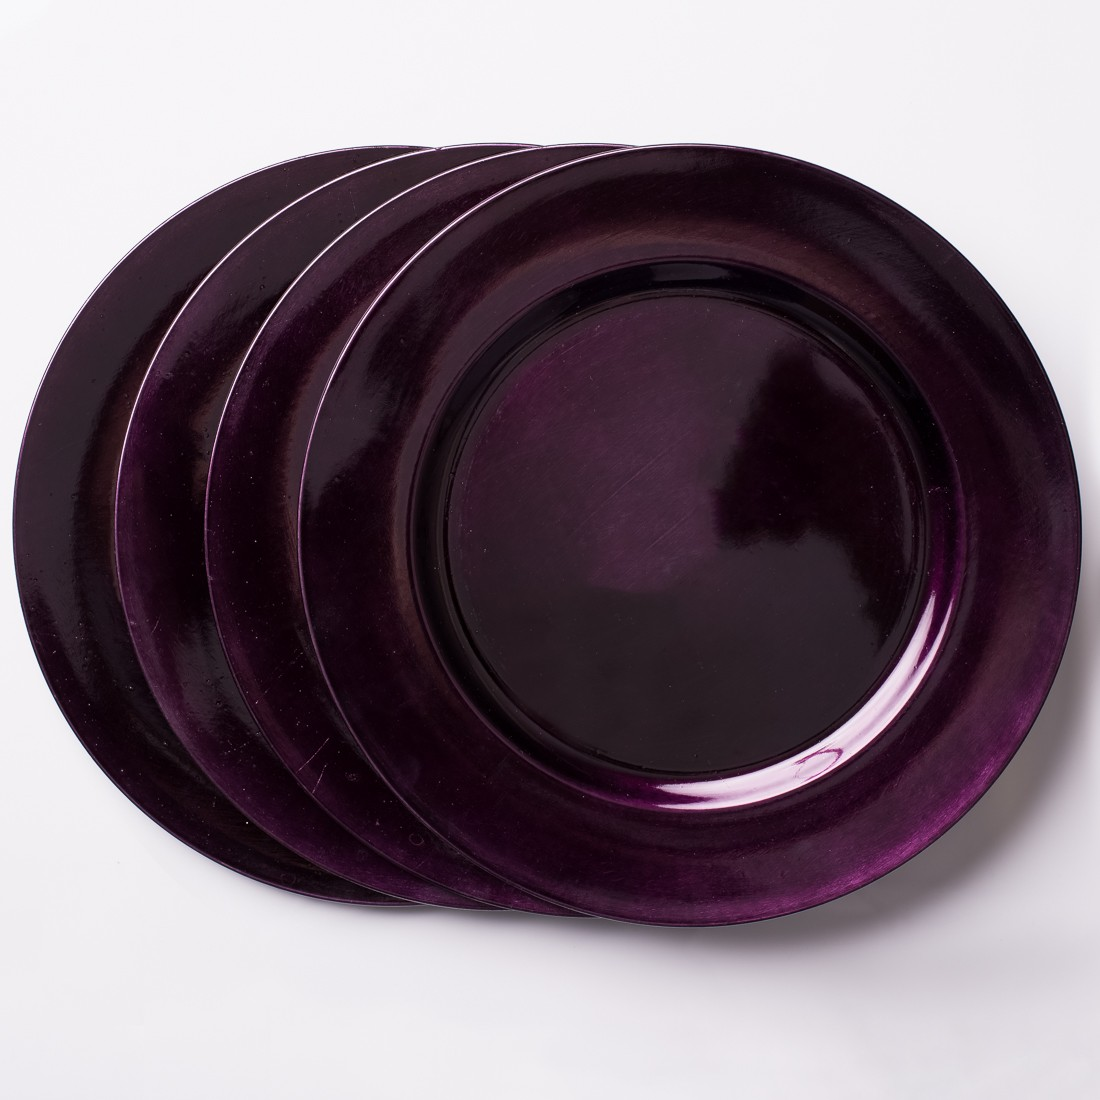 Astonishing Plate Chargers for Pretty Dinnerware Ideas: Plate Chargers | Plate Chargers Wholesale | Decorative Charger Plates